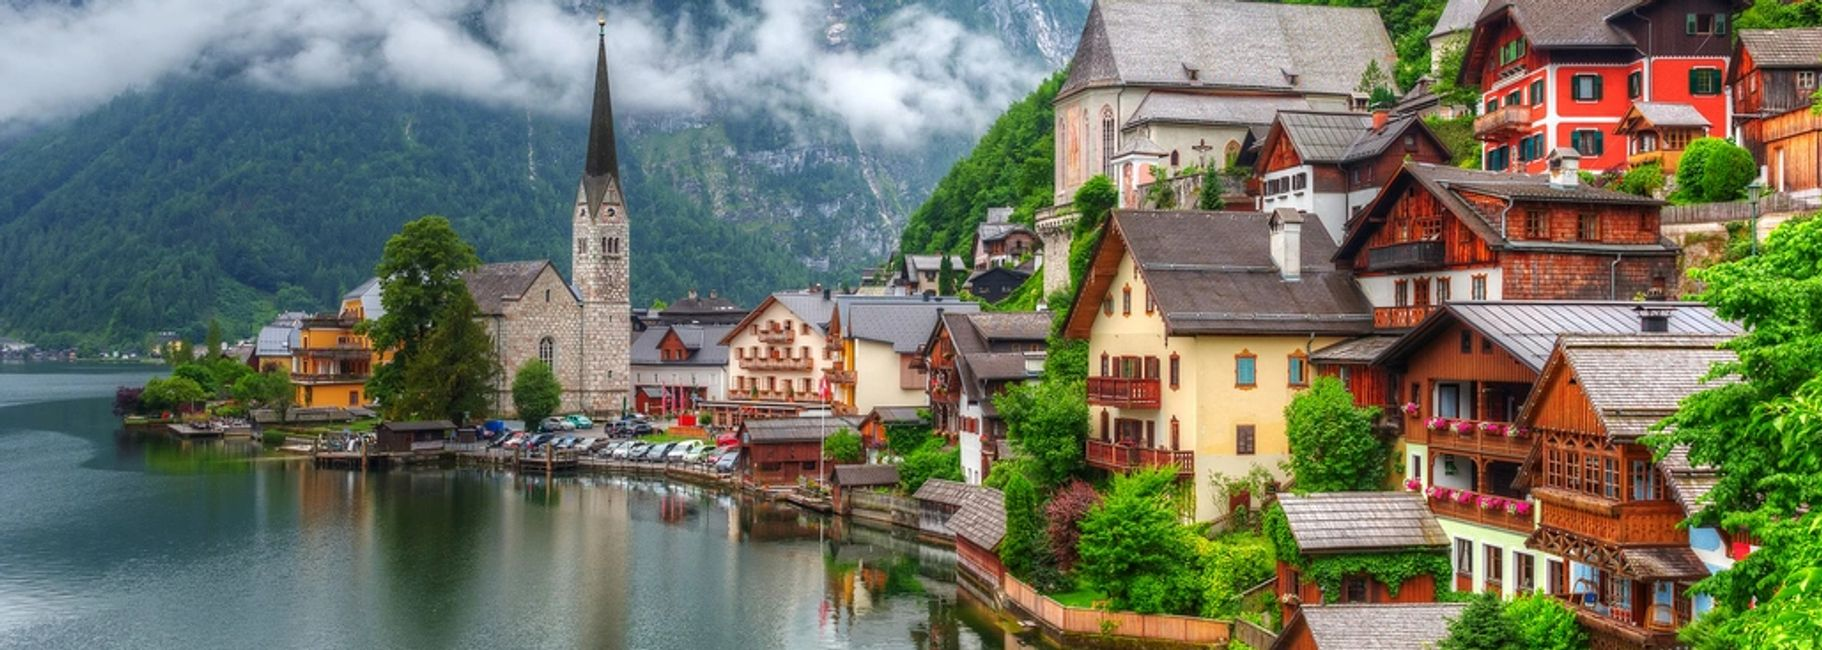 Traveler's Tongue Austria - An alpine land of fairy tale castles, Mozart, and Wiener schnitzel...